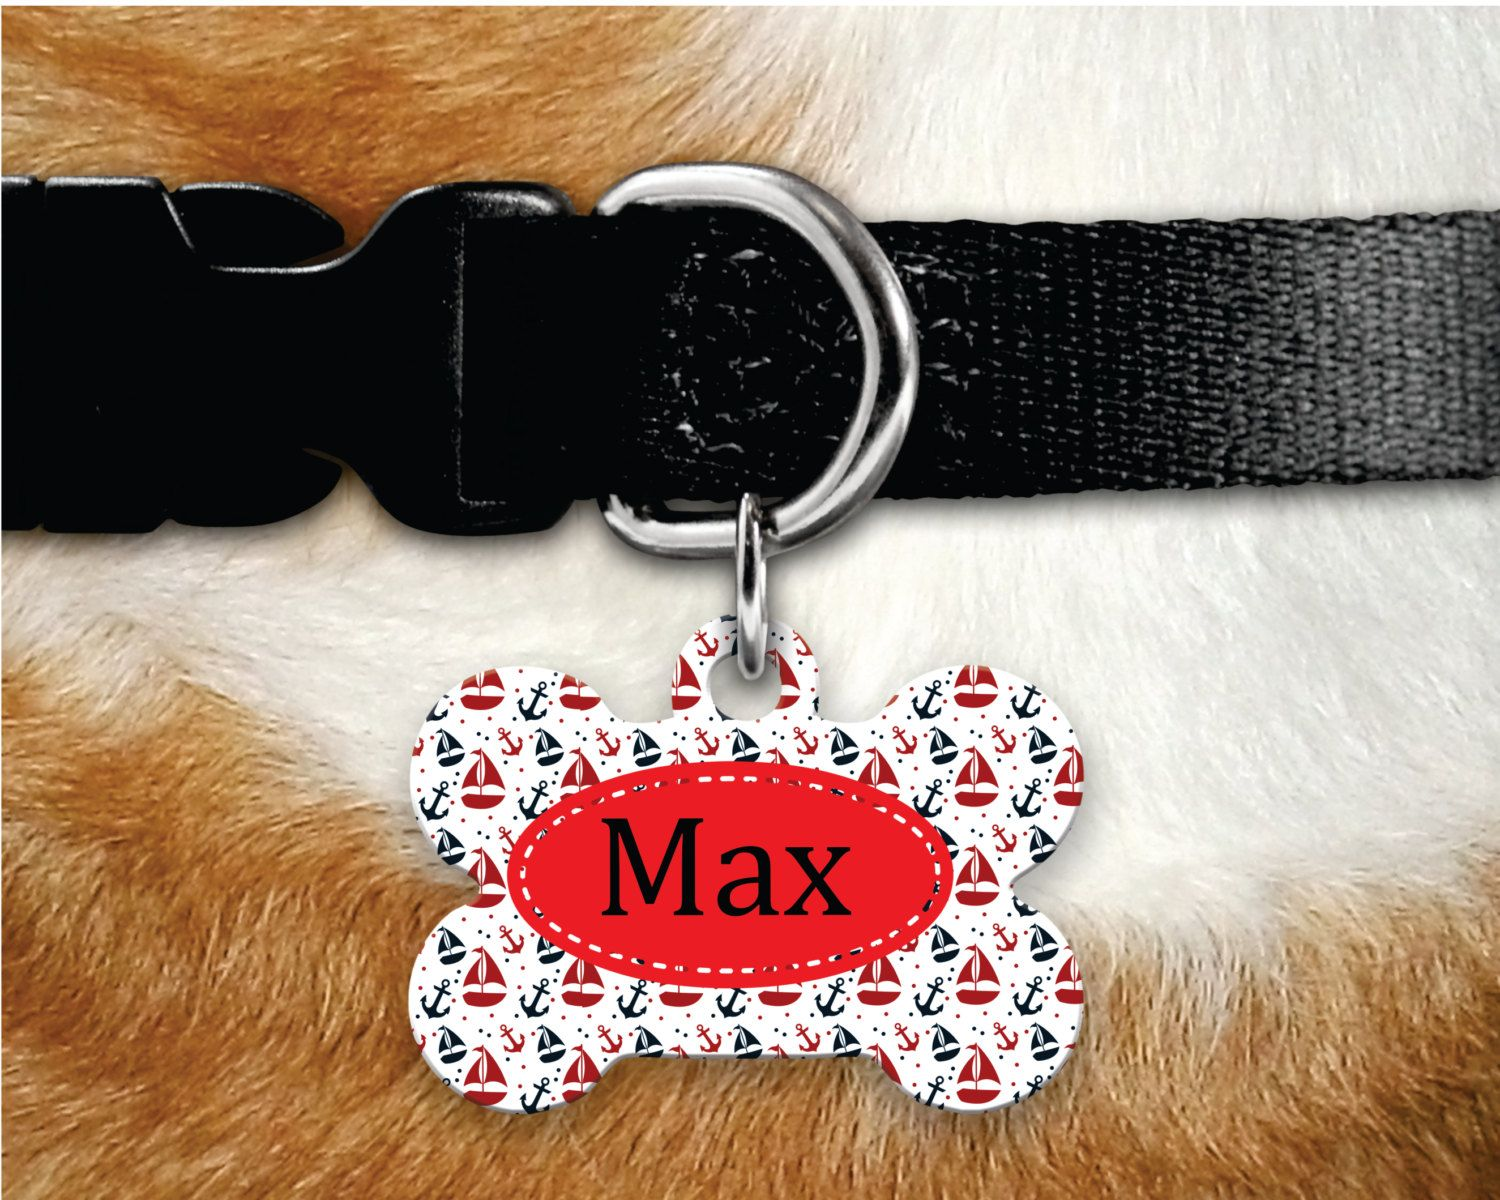 Personalized Dog Tag - Dog ID Tag - Personalized Bone Dog Tag - Custom Pet ID Tag- Nautical Pet Tag- Sailor Pet Tag- Dog Tags For dogs\ by MysticCustomDesignCo on Etsy